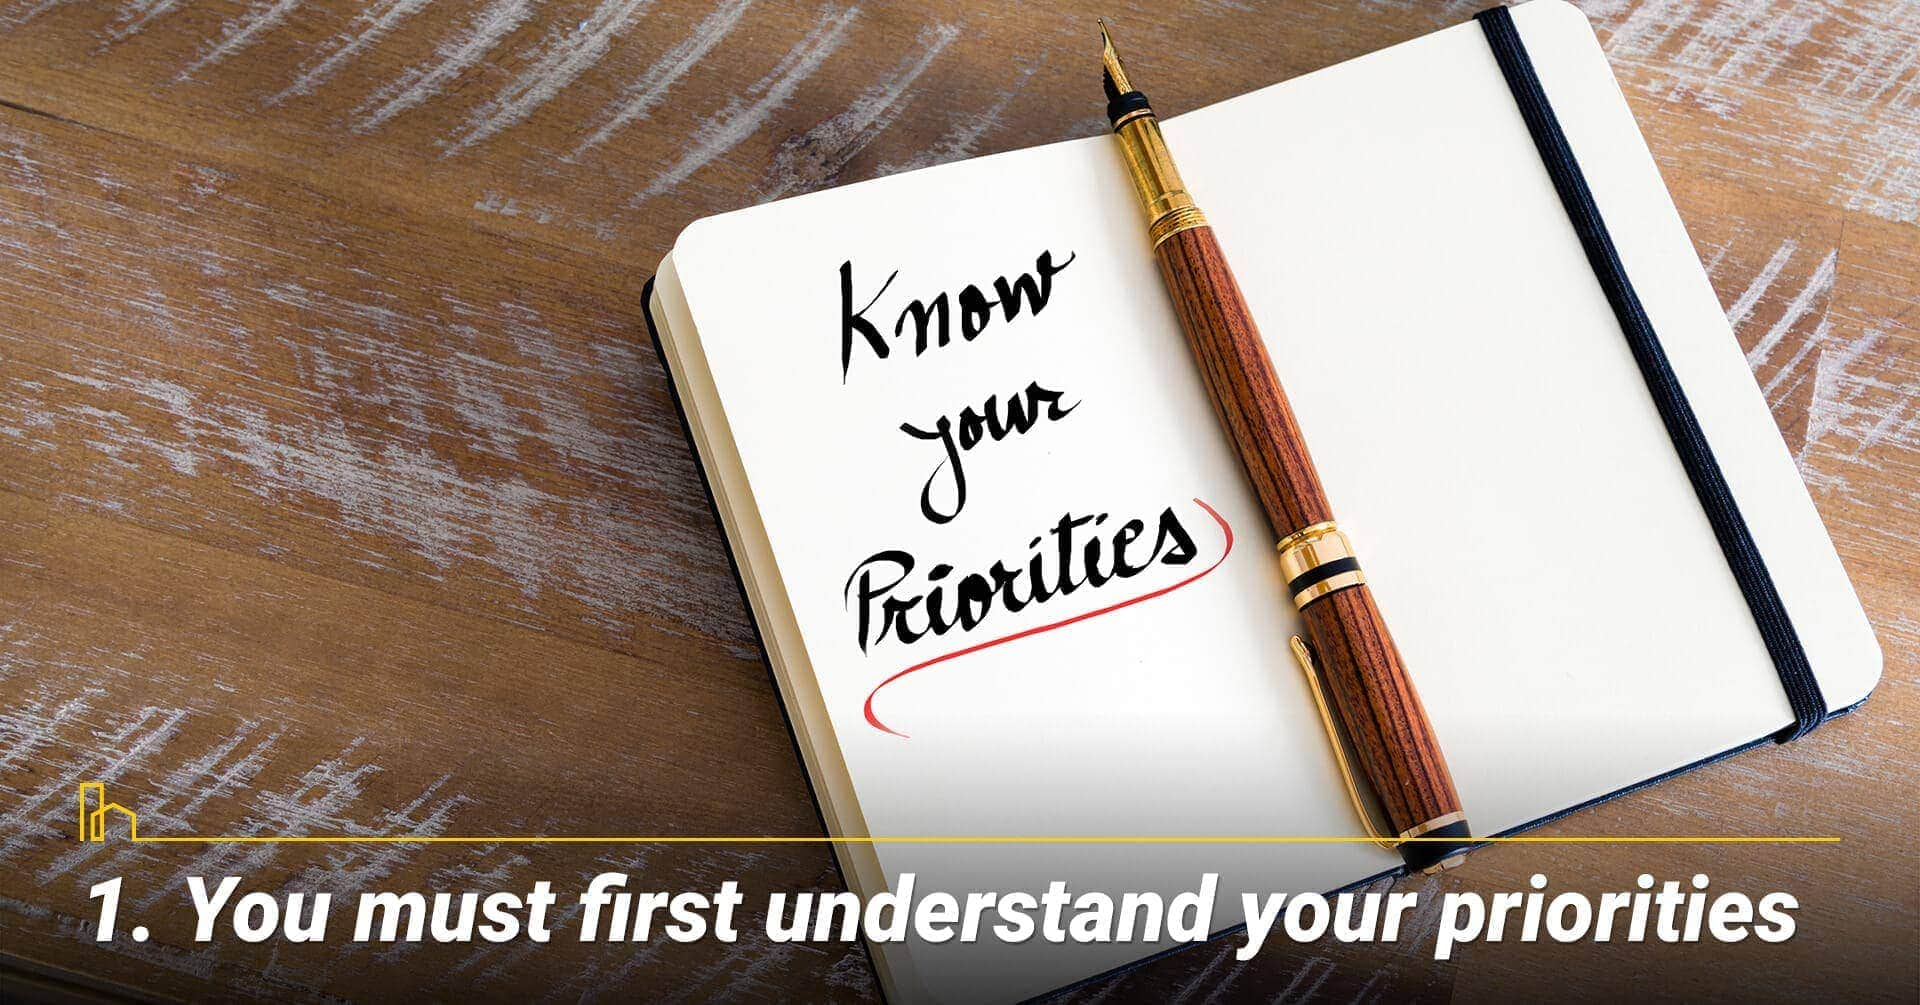 You must first understand your priorities, prioritize your needs